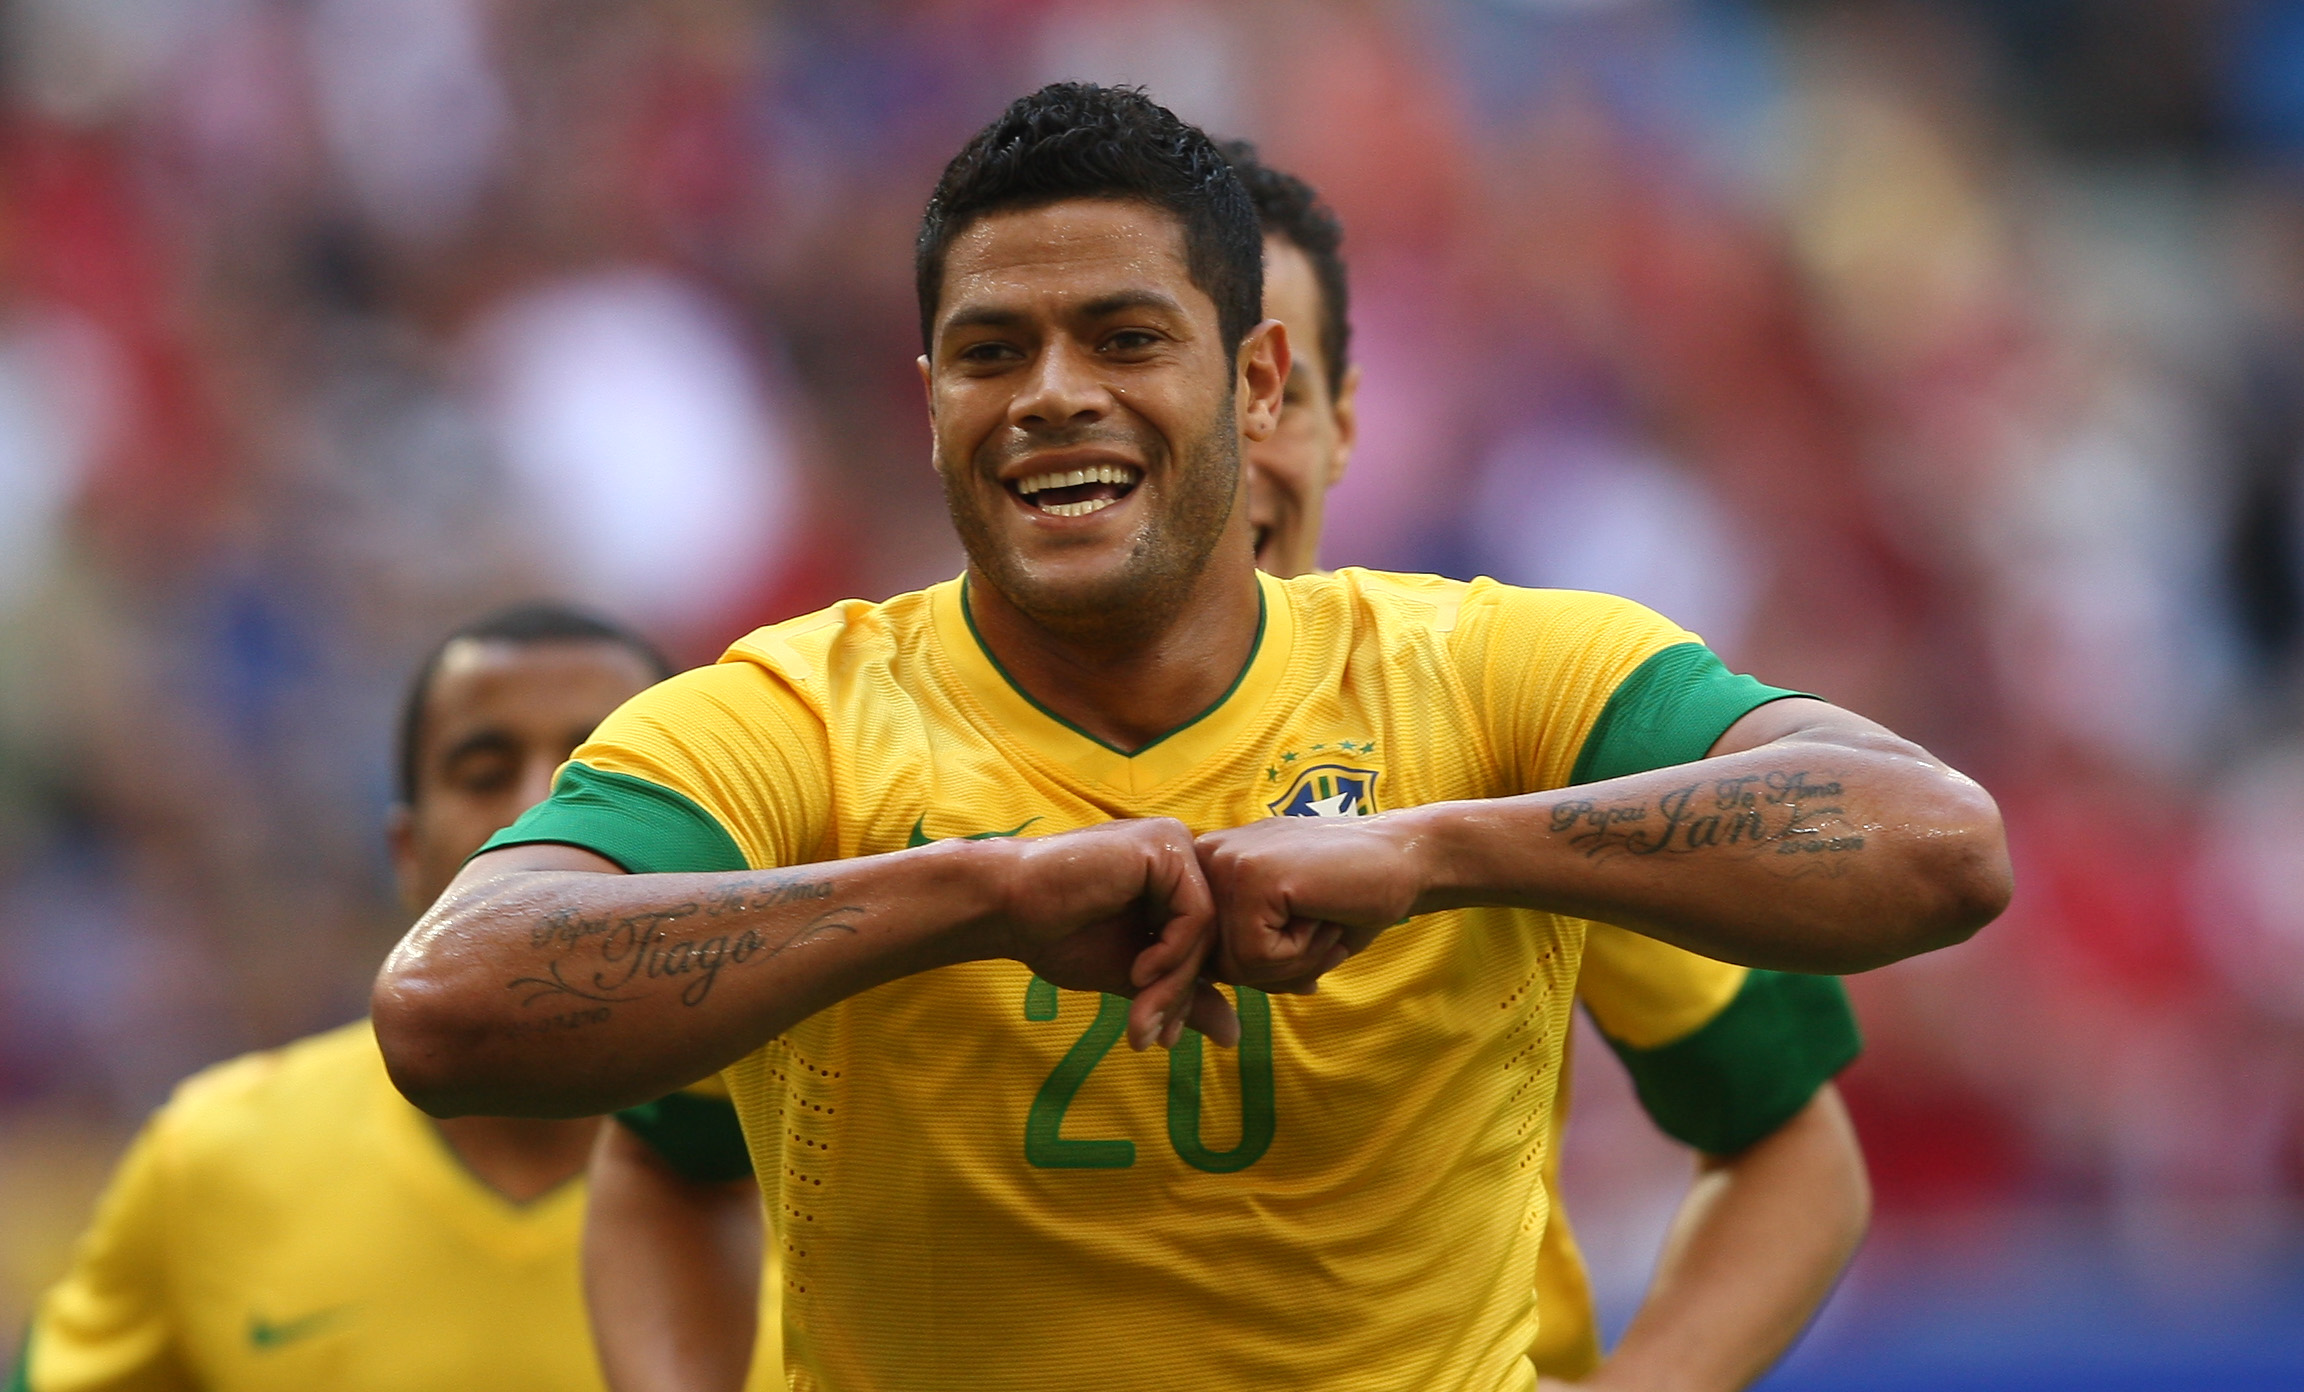 RUMOUR: Arsenal have a £26.5m bid for Hulk accepted by Zenit, medical before the World Cup [NBC Sports]